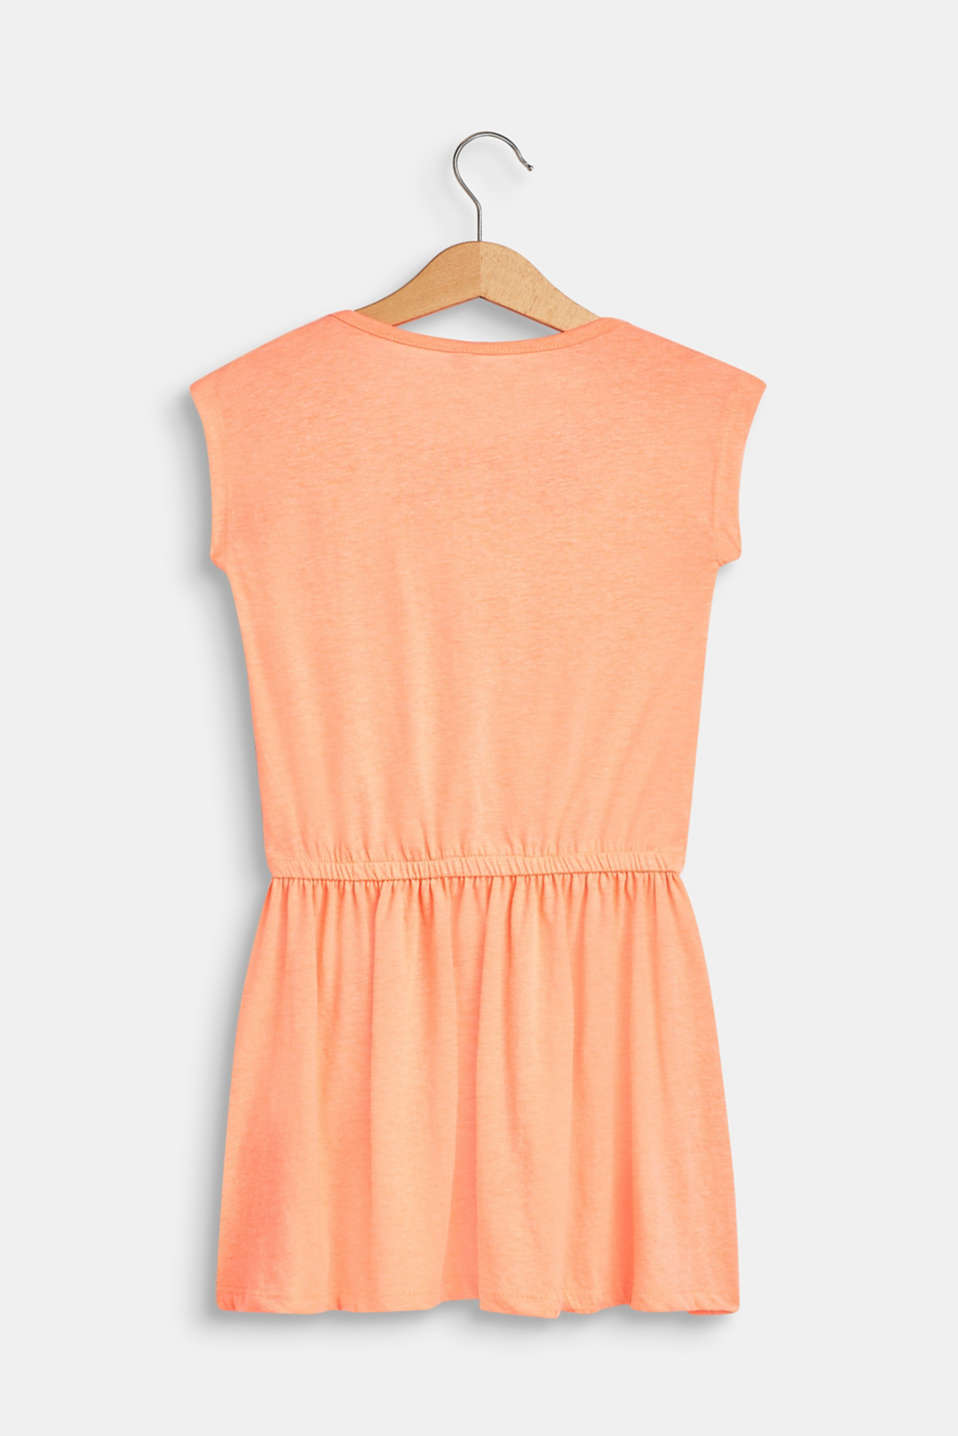 Jersey dress with a tropical print, 100% cotton, NEON CORAL, detail image number 1